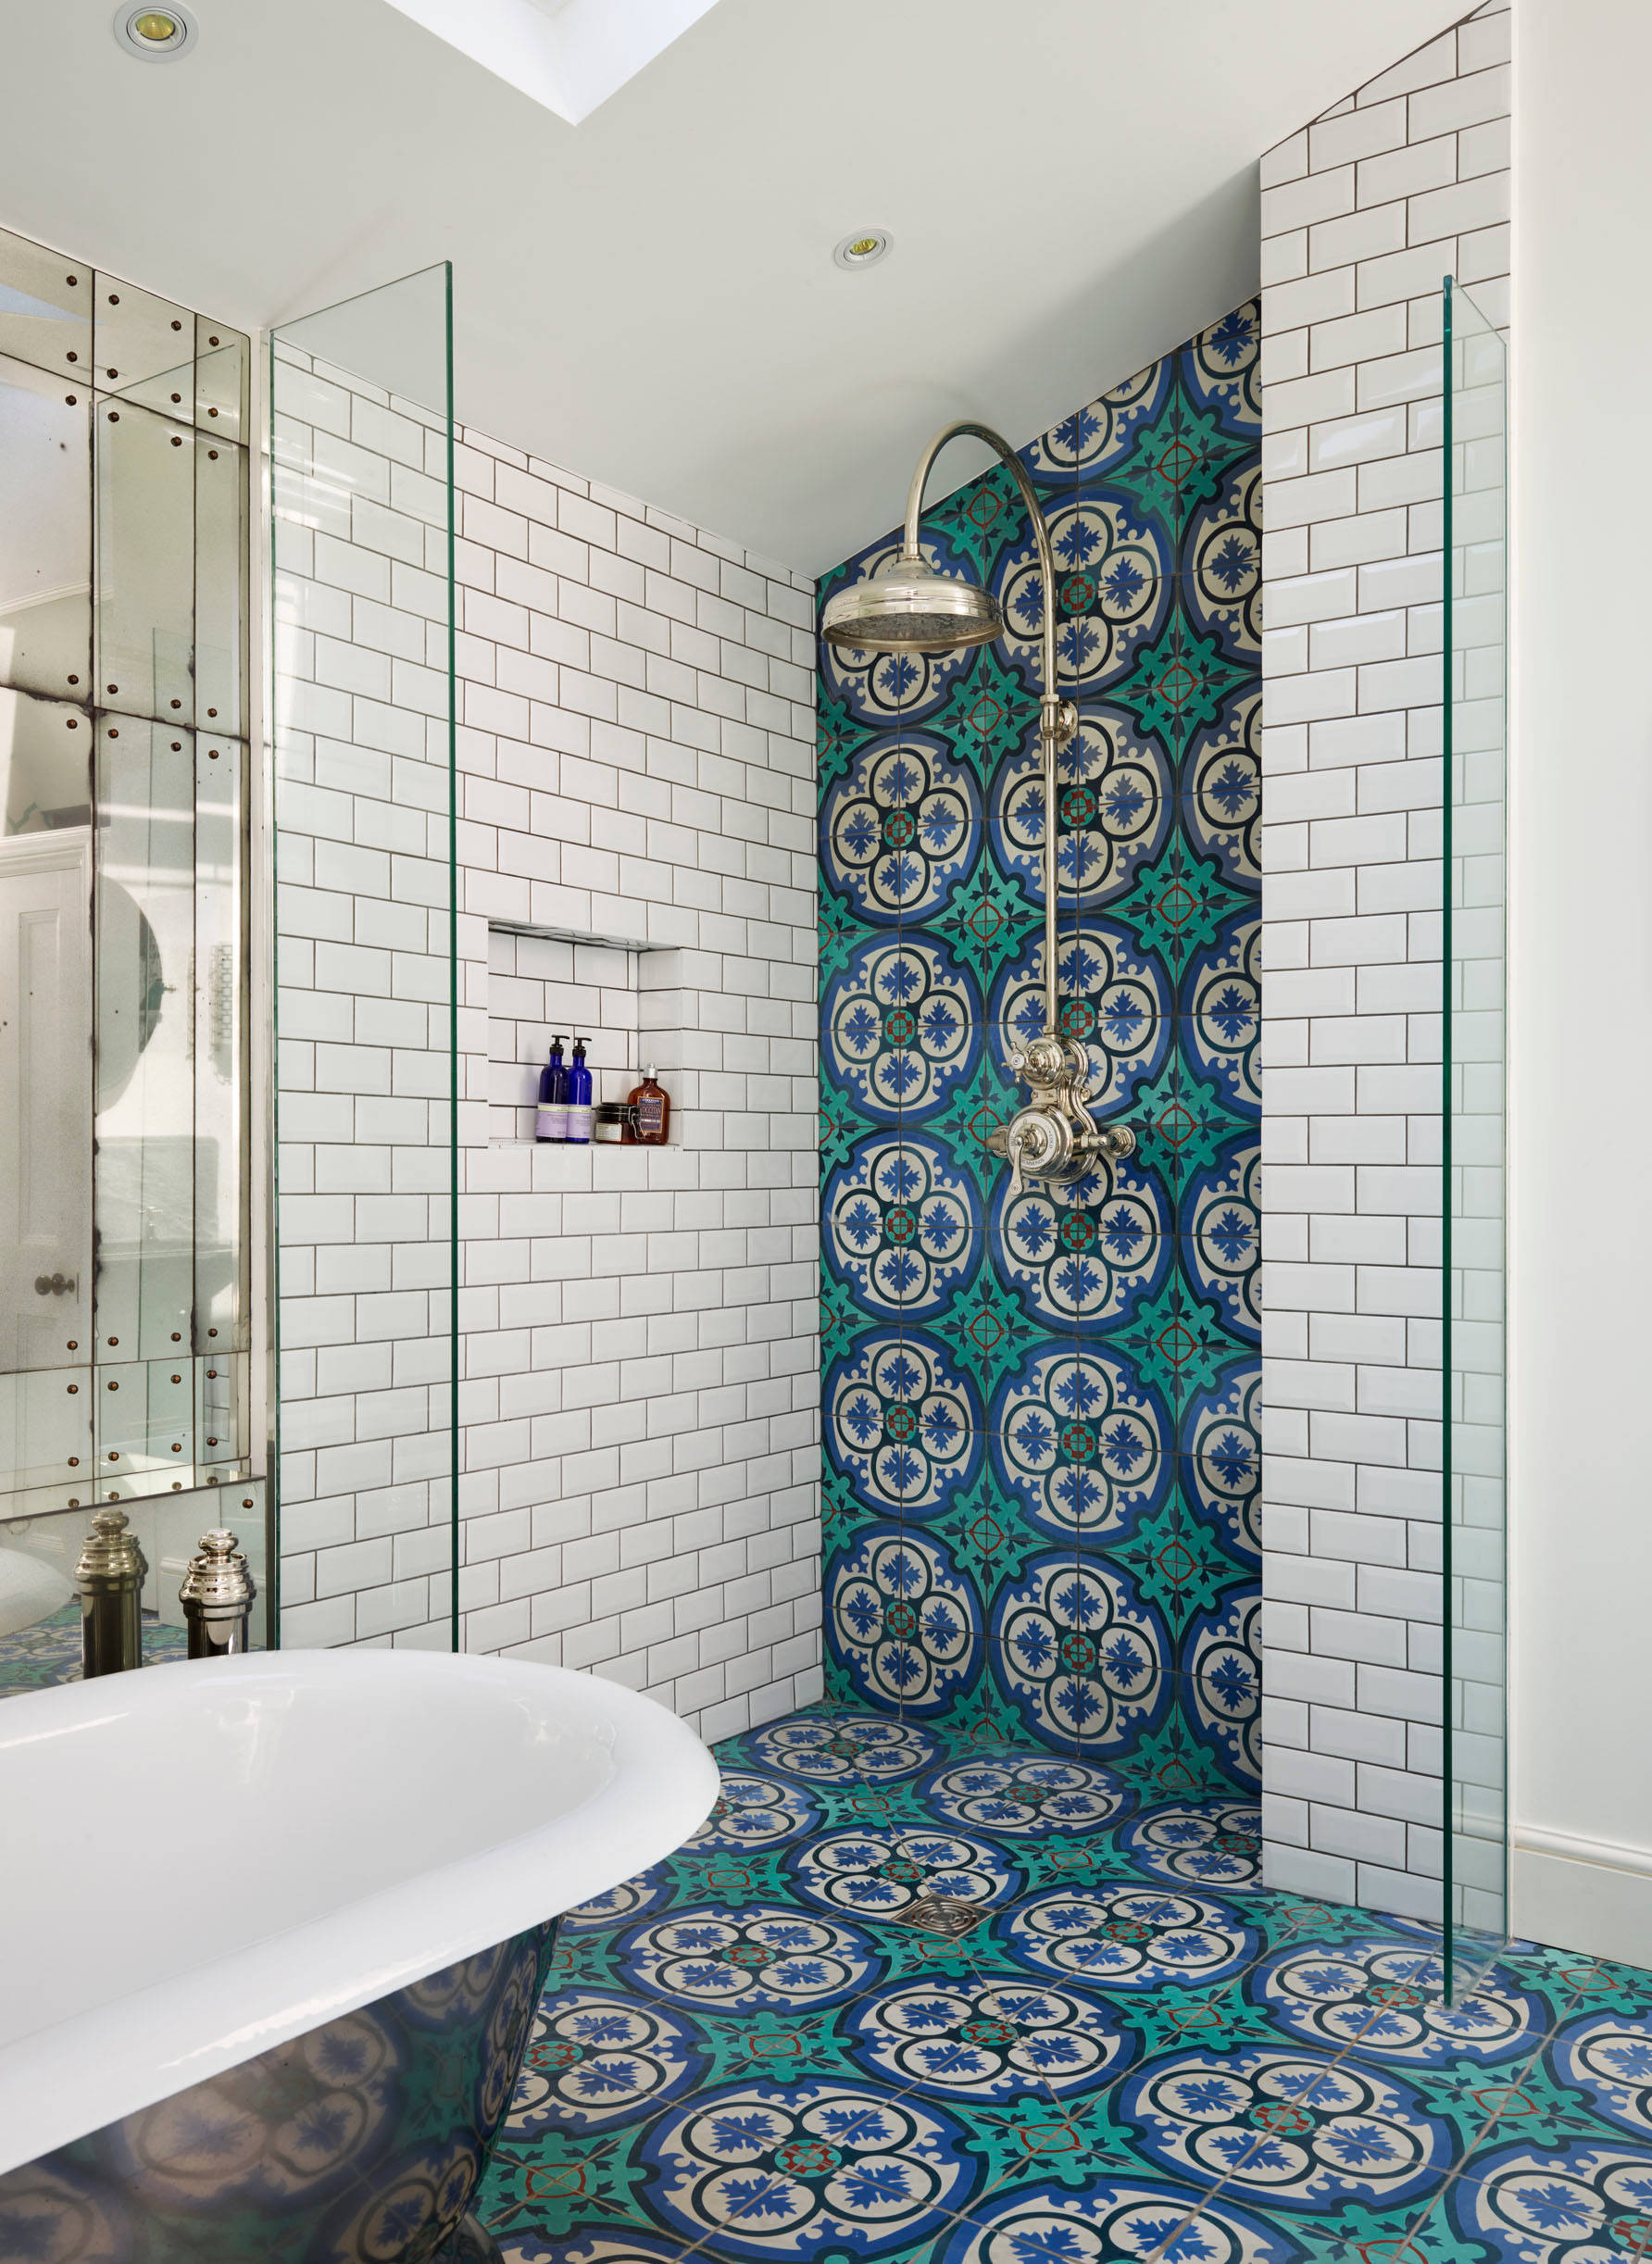 75 Beautiful Multicolored Tile Bathroom Pictures Ideas April 2021 Houzz